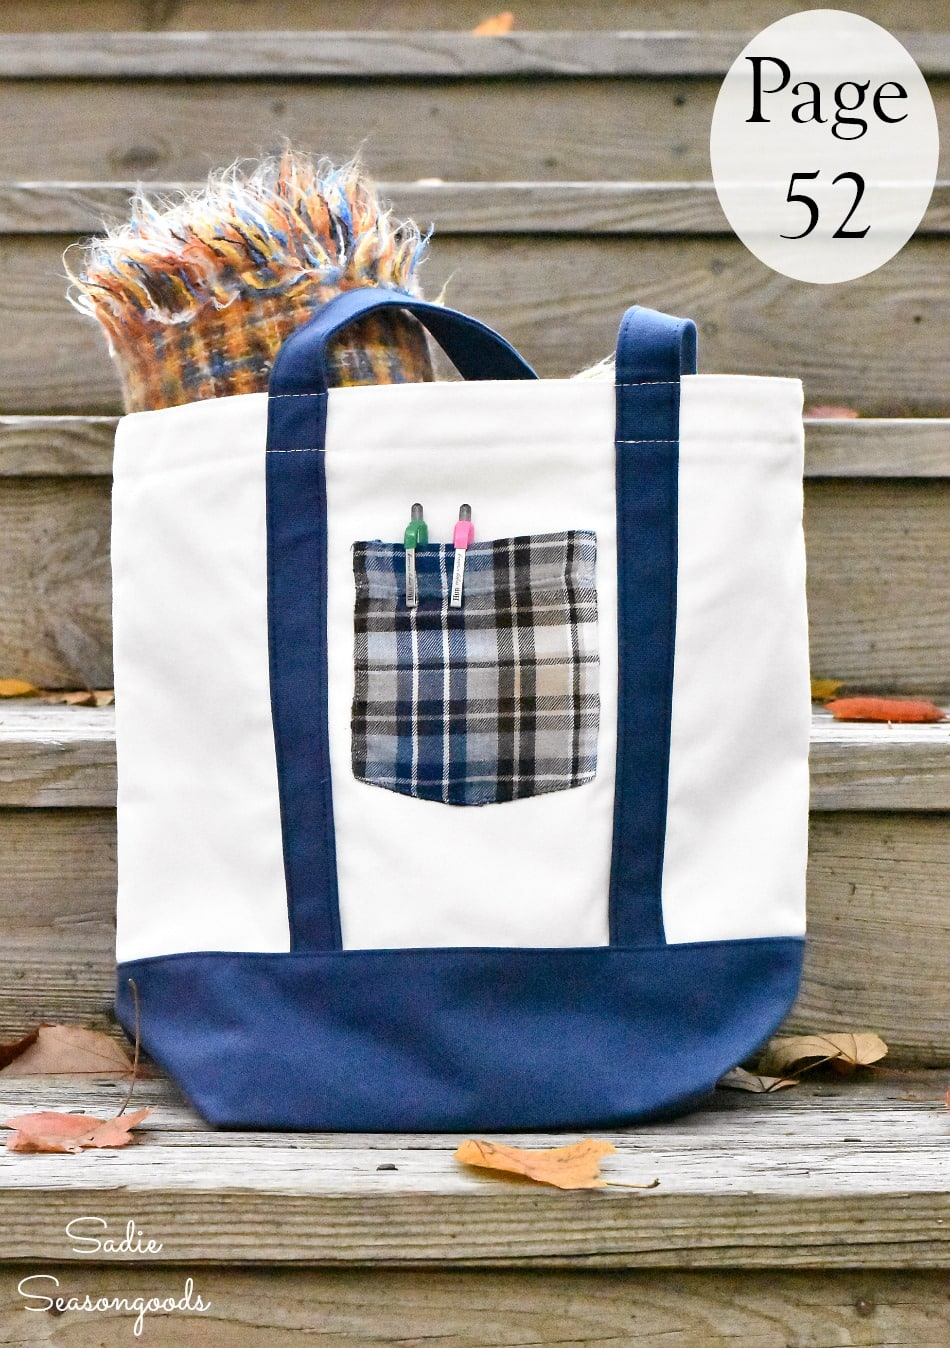 Decorating a tote bag with a flannel pocket